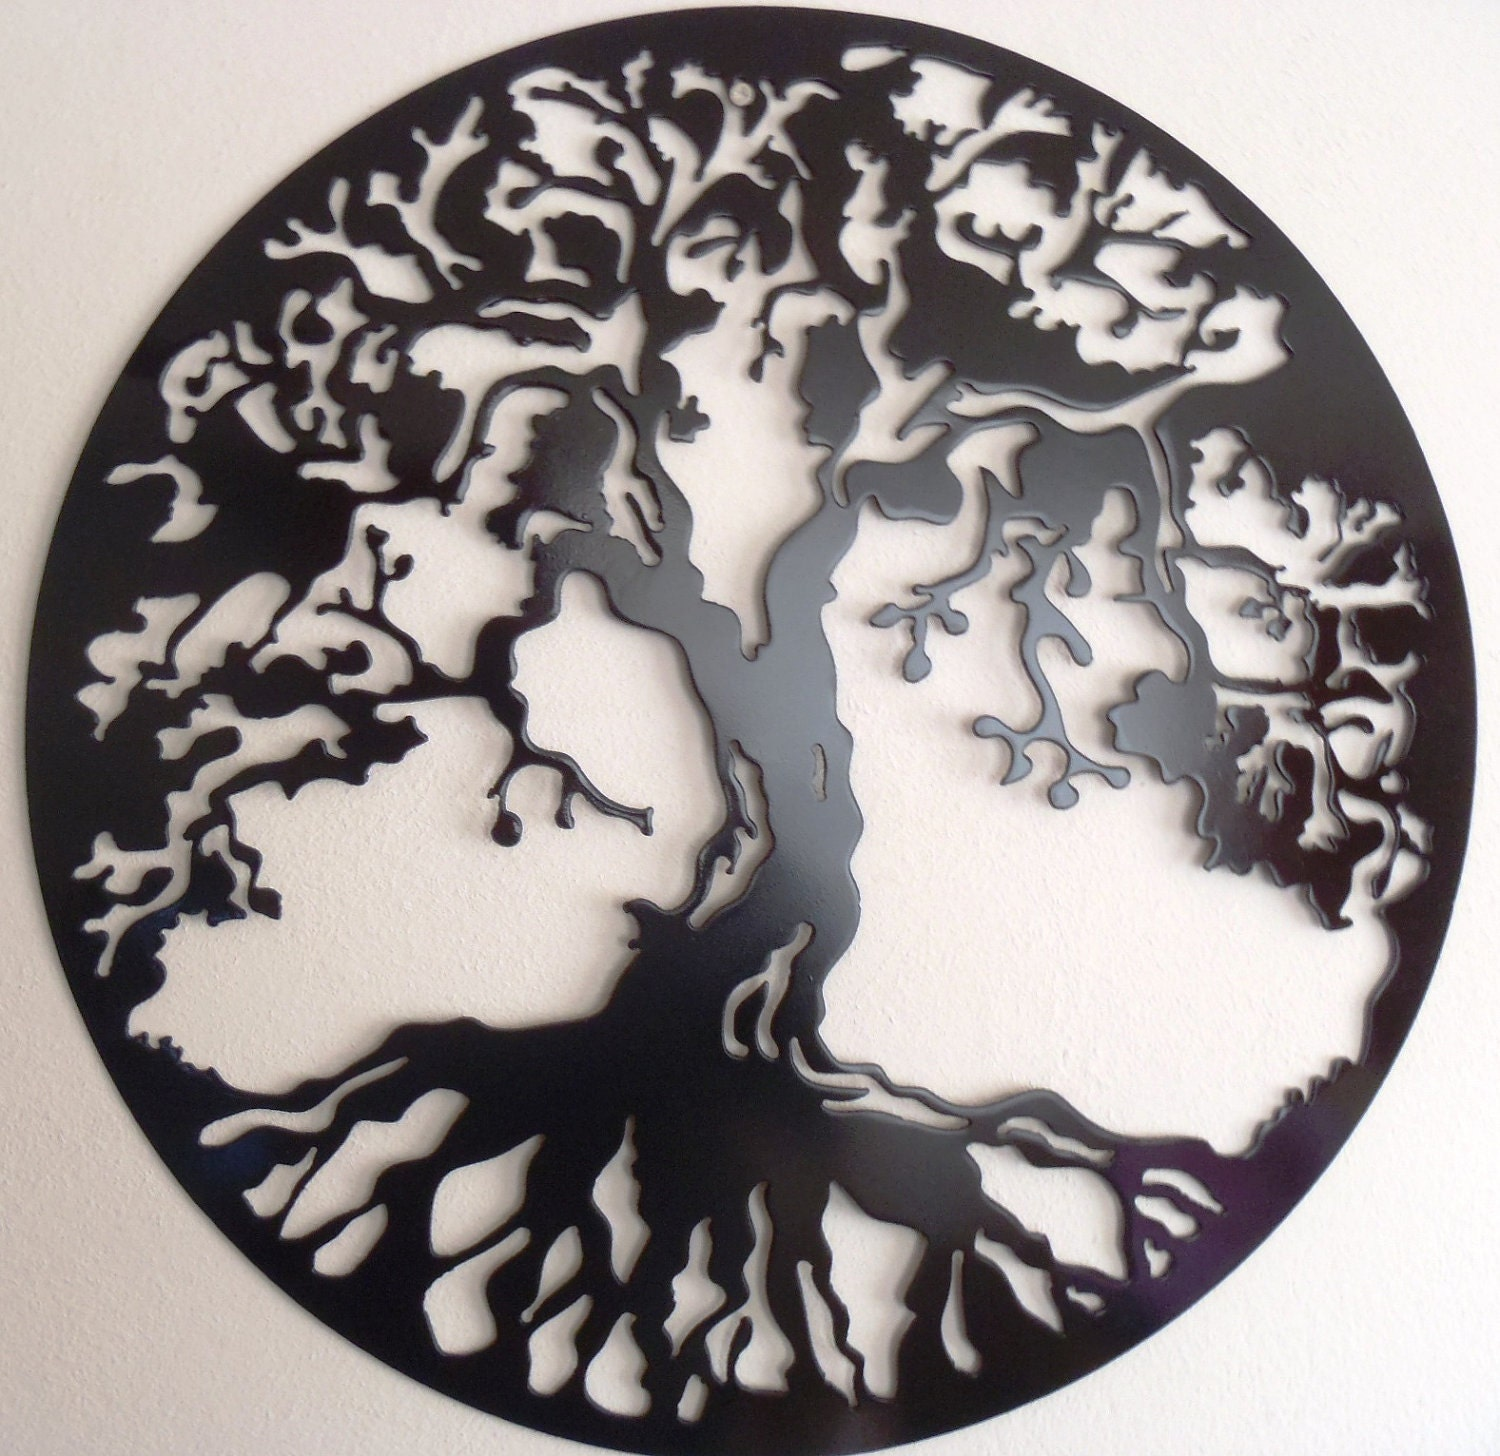 tree of life 75 cm 29 5 wall decor metal art black